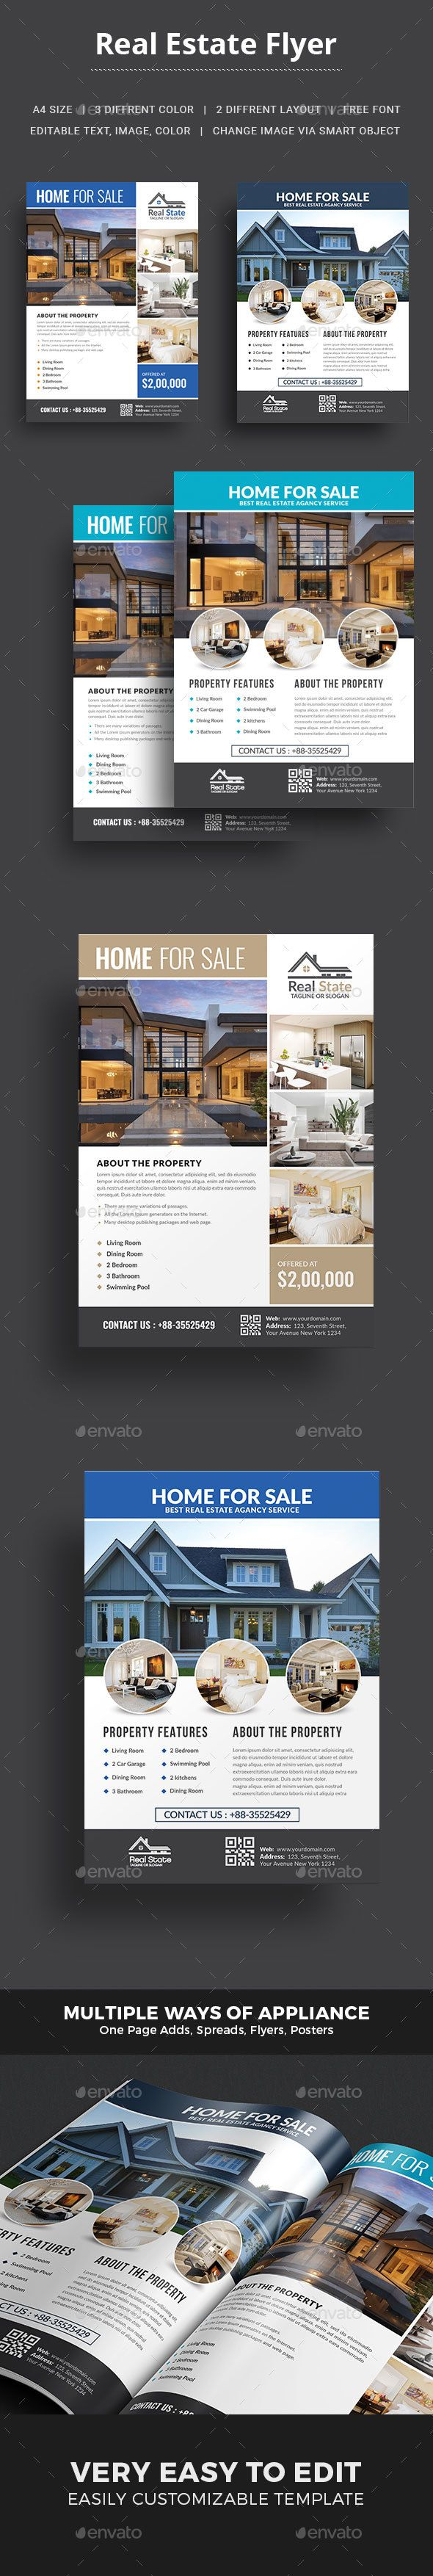 real estate flyer ad design marketing and promotion real estate flyer template